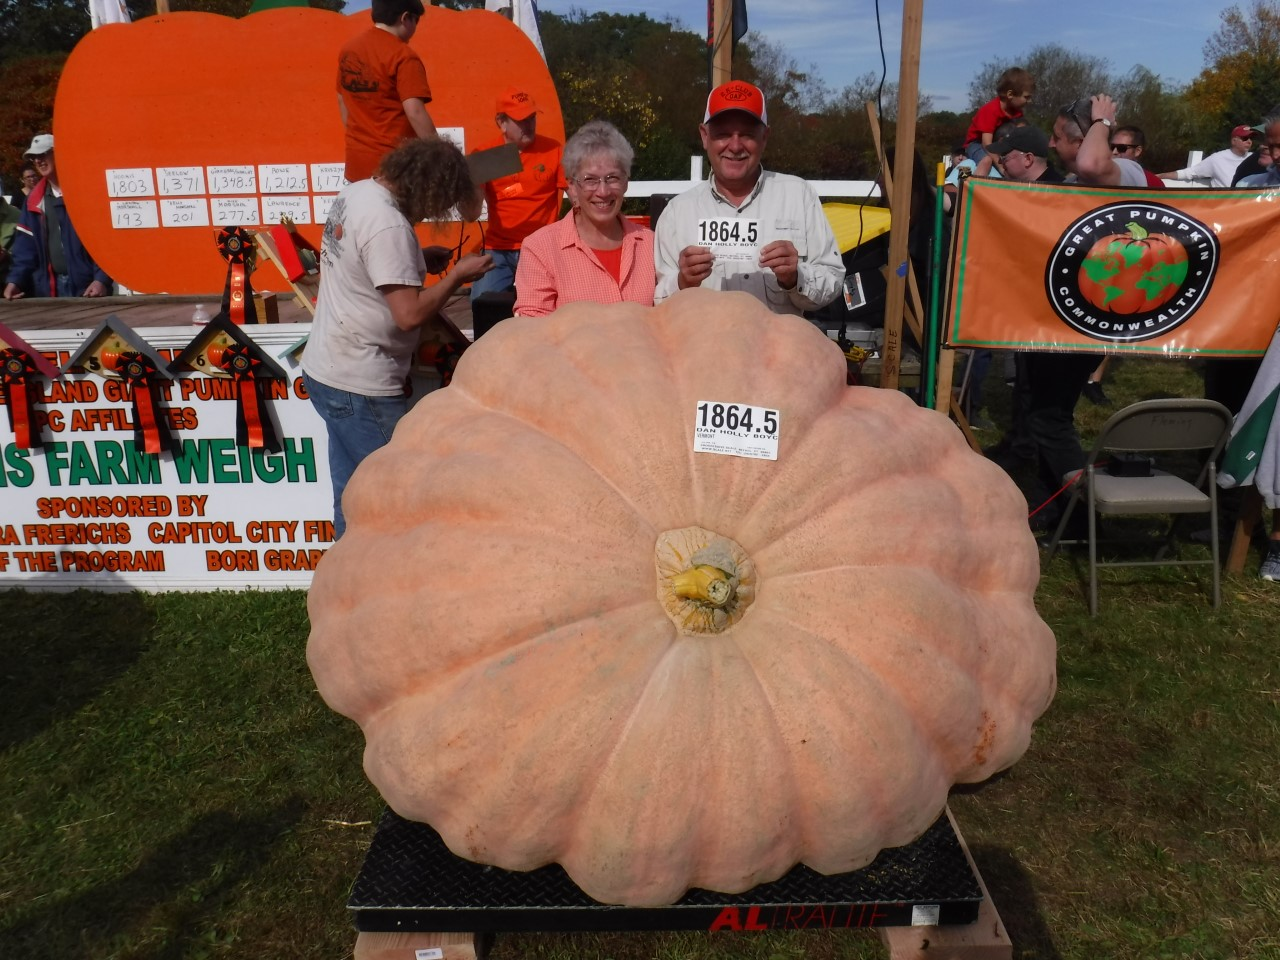 Local couple grows gigantic pumpkins